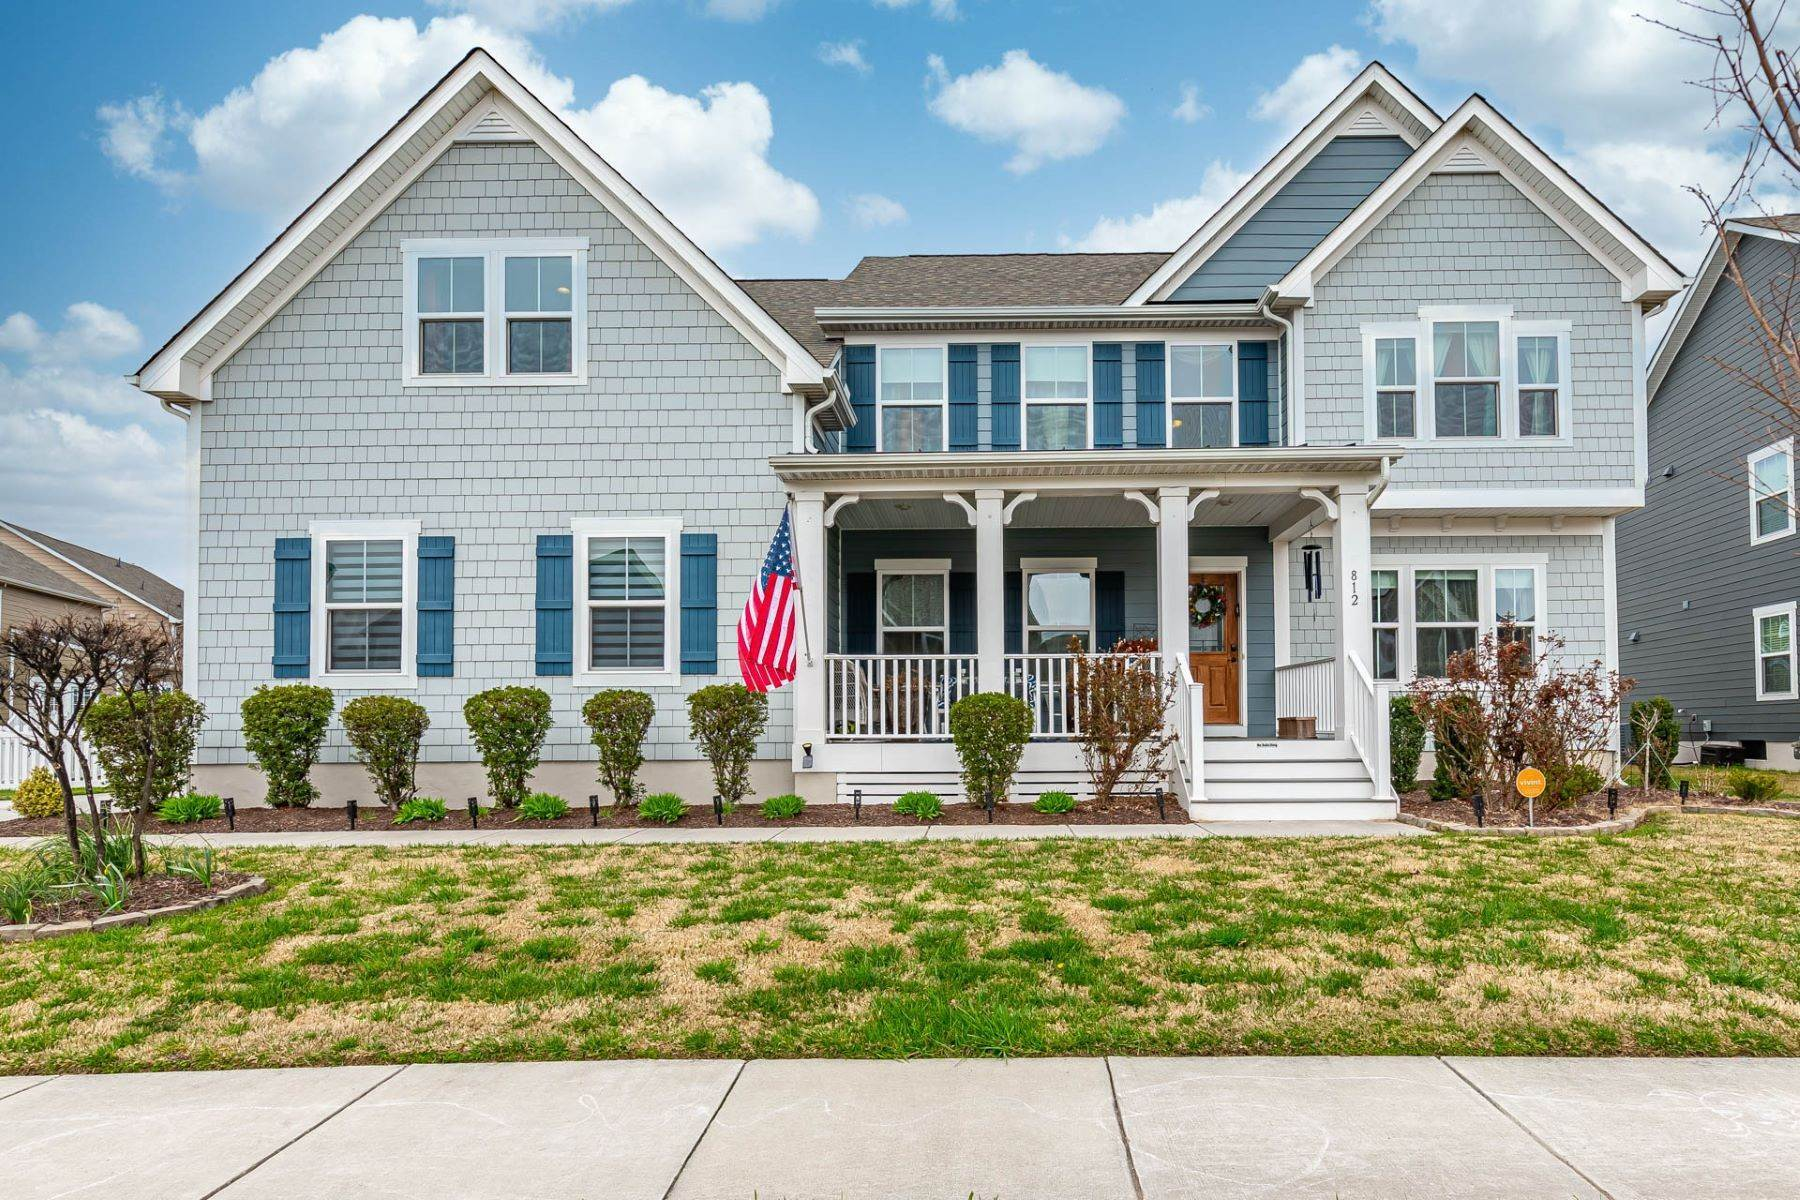 Single Family Homes for Sale at Culpepper Landing Estates 812 Canoe Street Chesapeake, Virginia 23323 United States